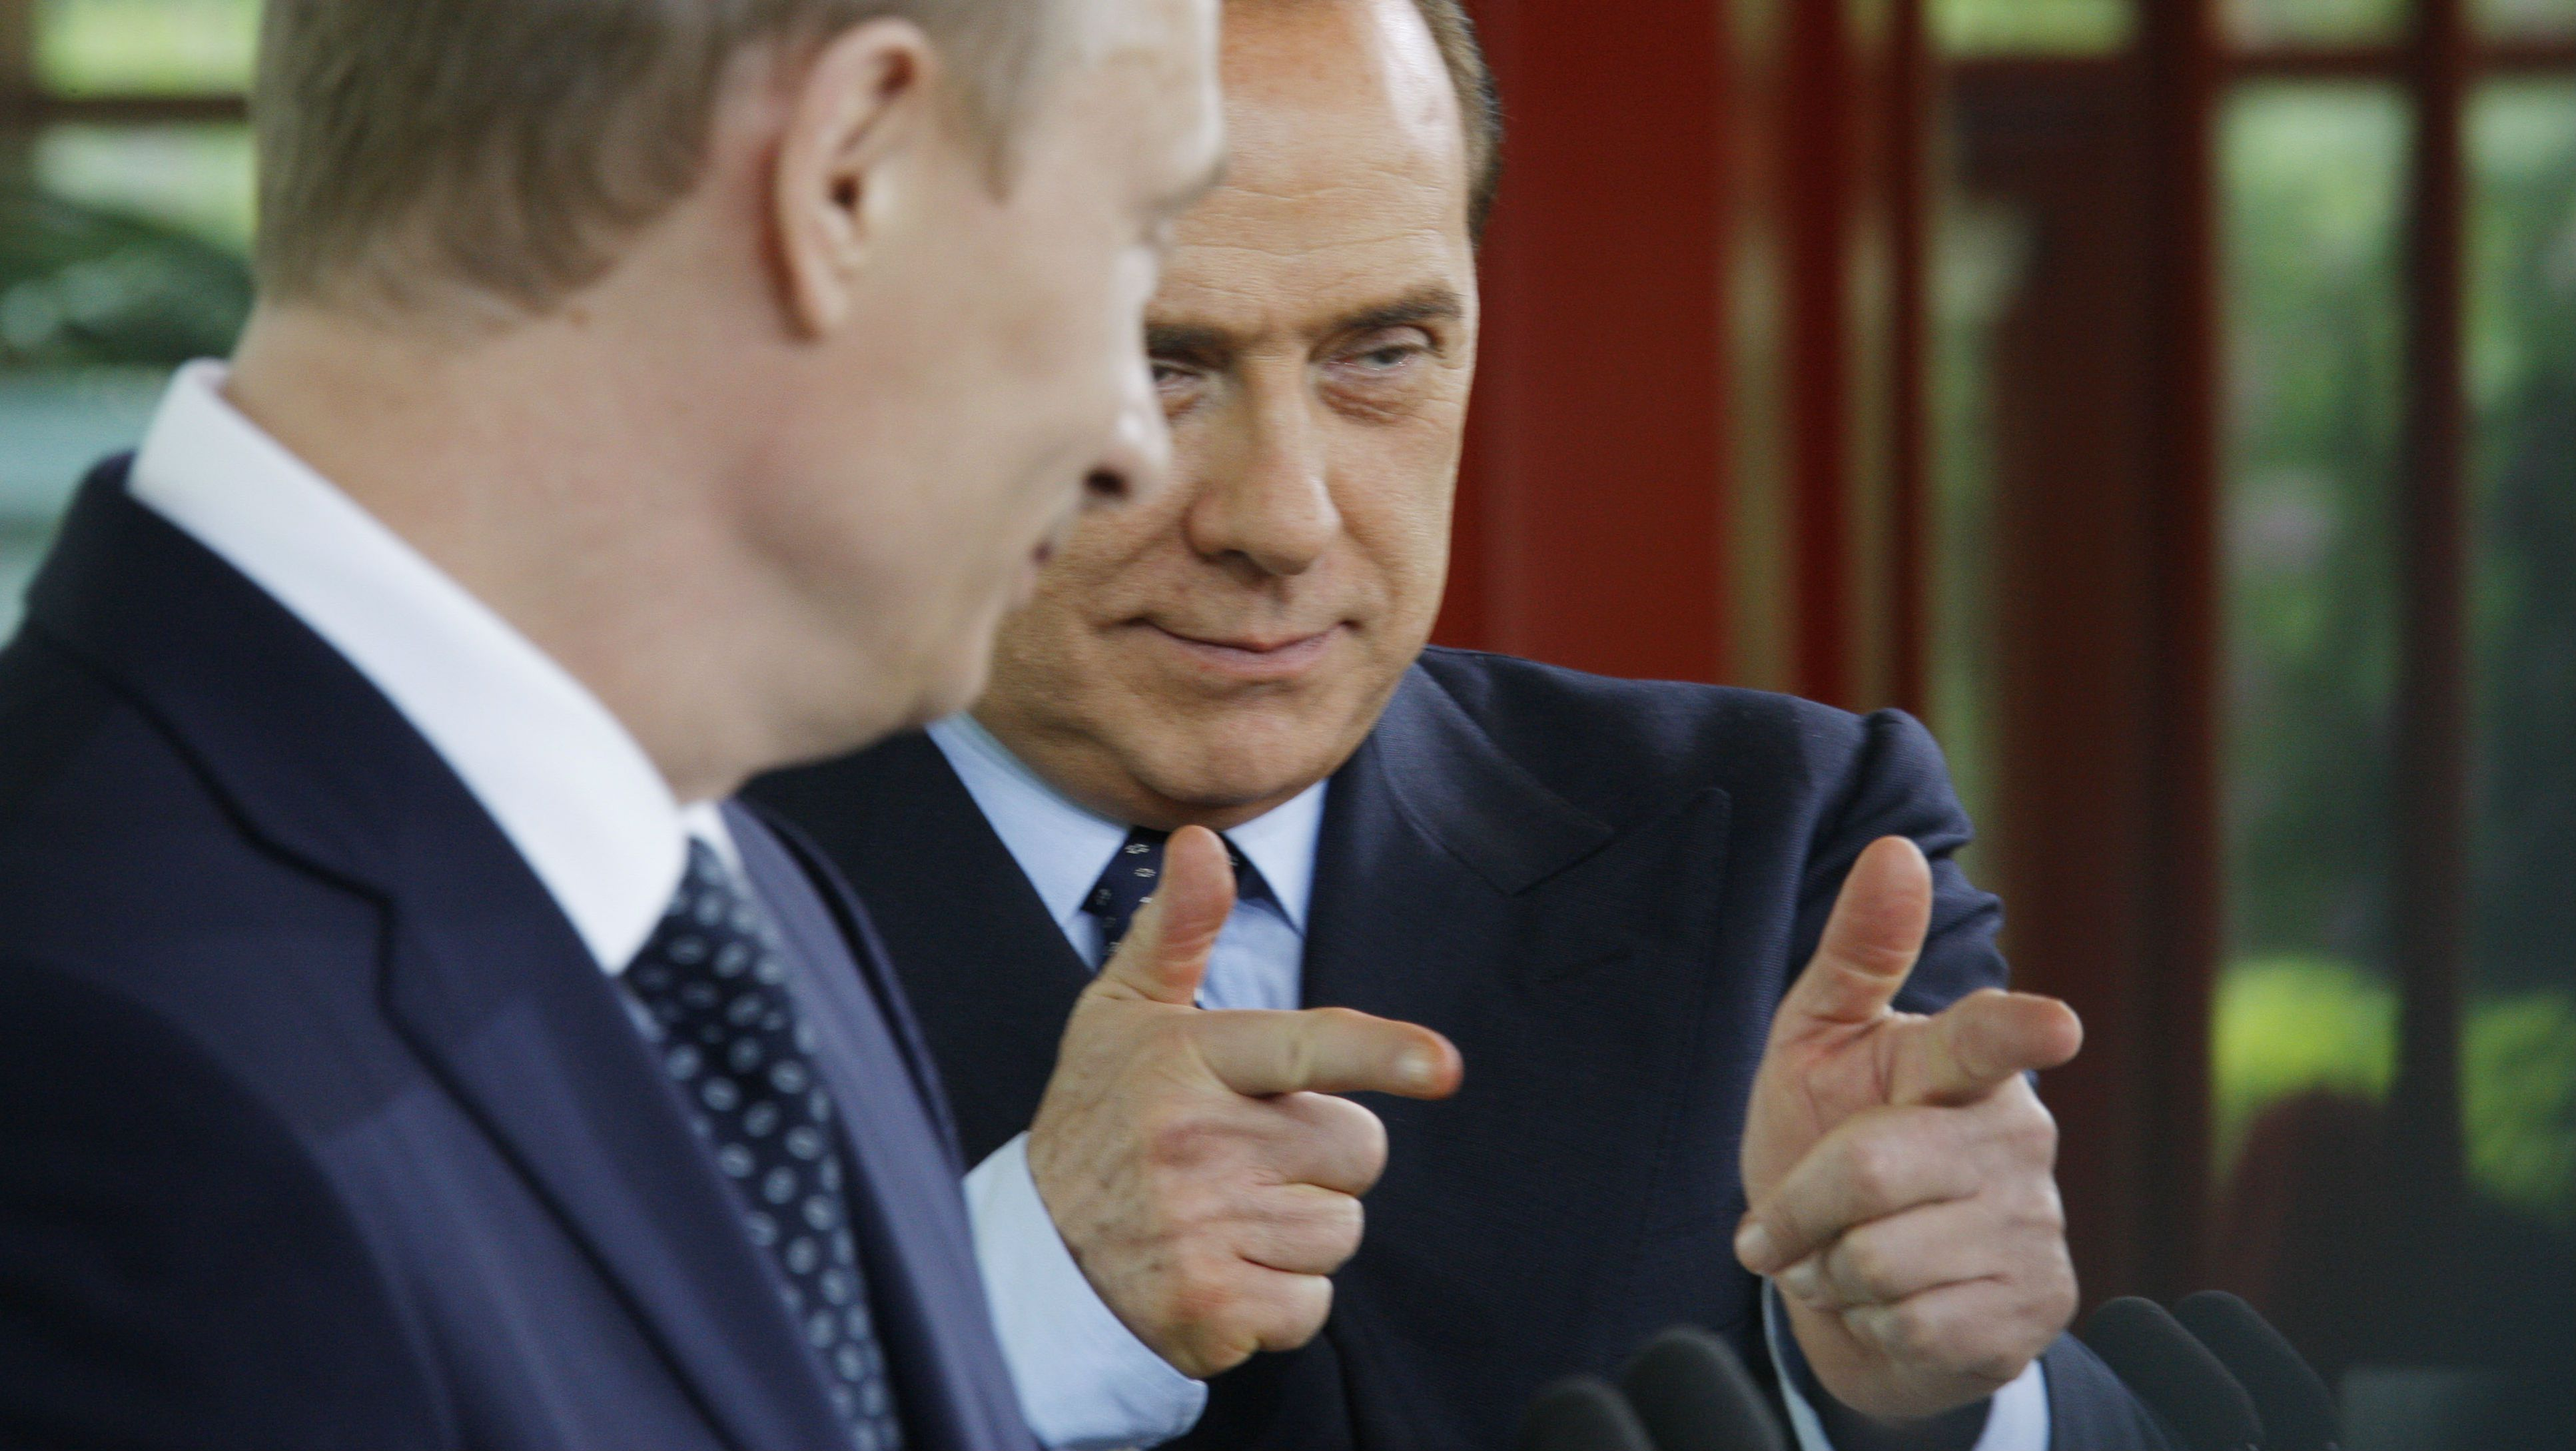 Russia's president Vladmir Putin, left, looks on as Italy's Premier-elect Silvio Berlusconi gestures, during a joint news conference after talks in Berlusconi's Villa Certosa, in Porto Rotondo, on the island region of Sardinia, Italy, Friday, April 18, 2008. (AP Photo/Luca Bruno)